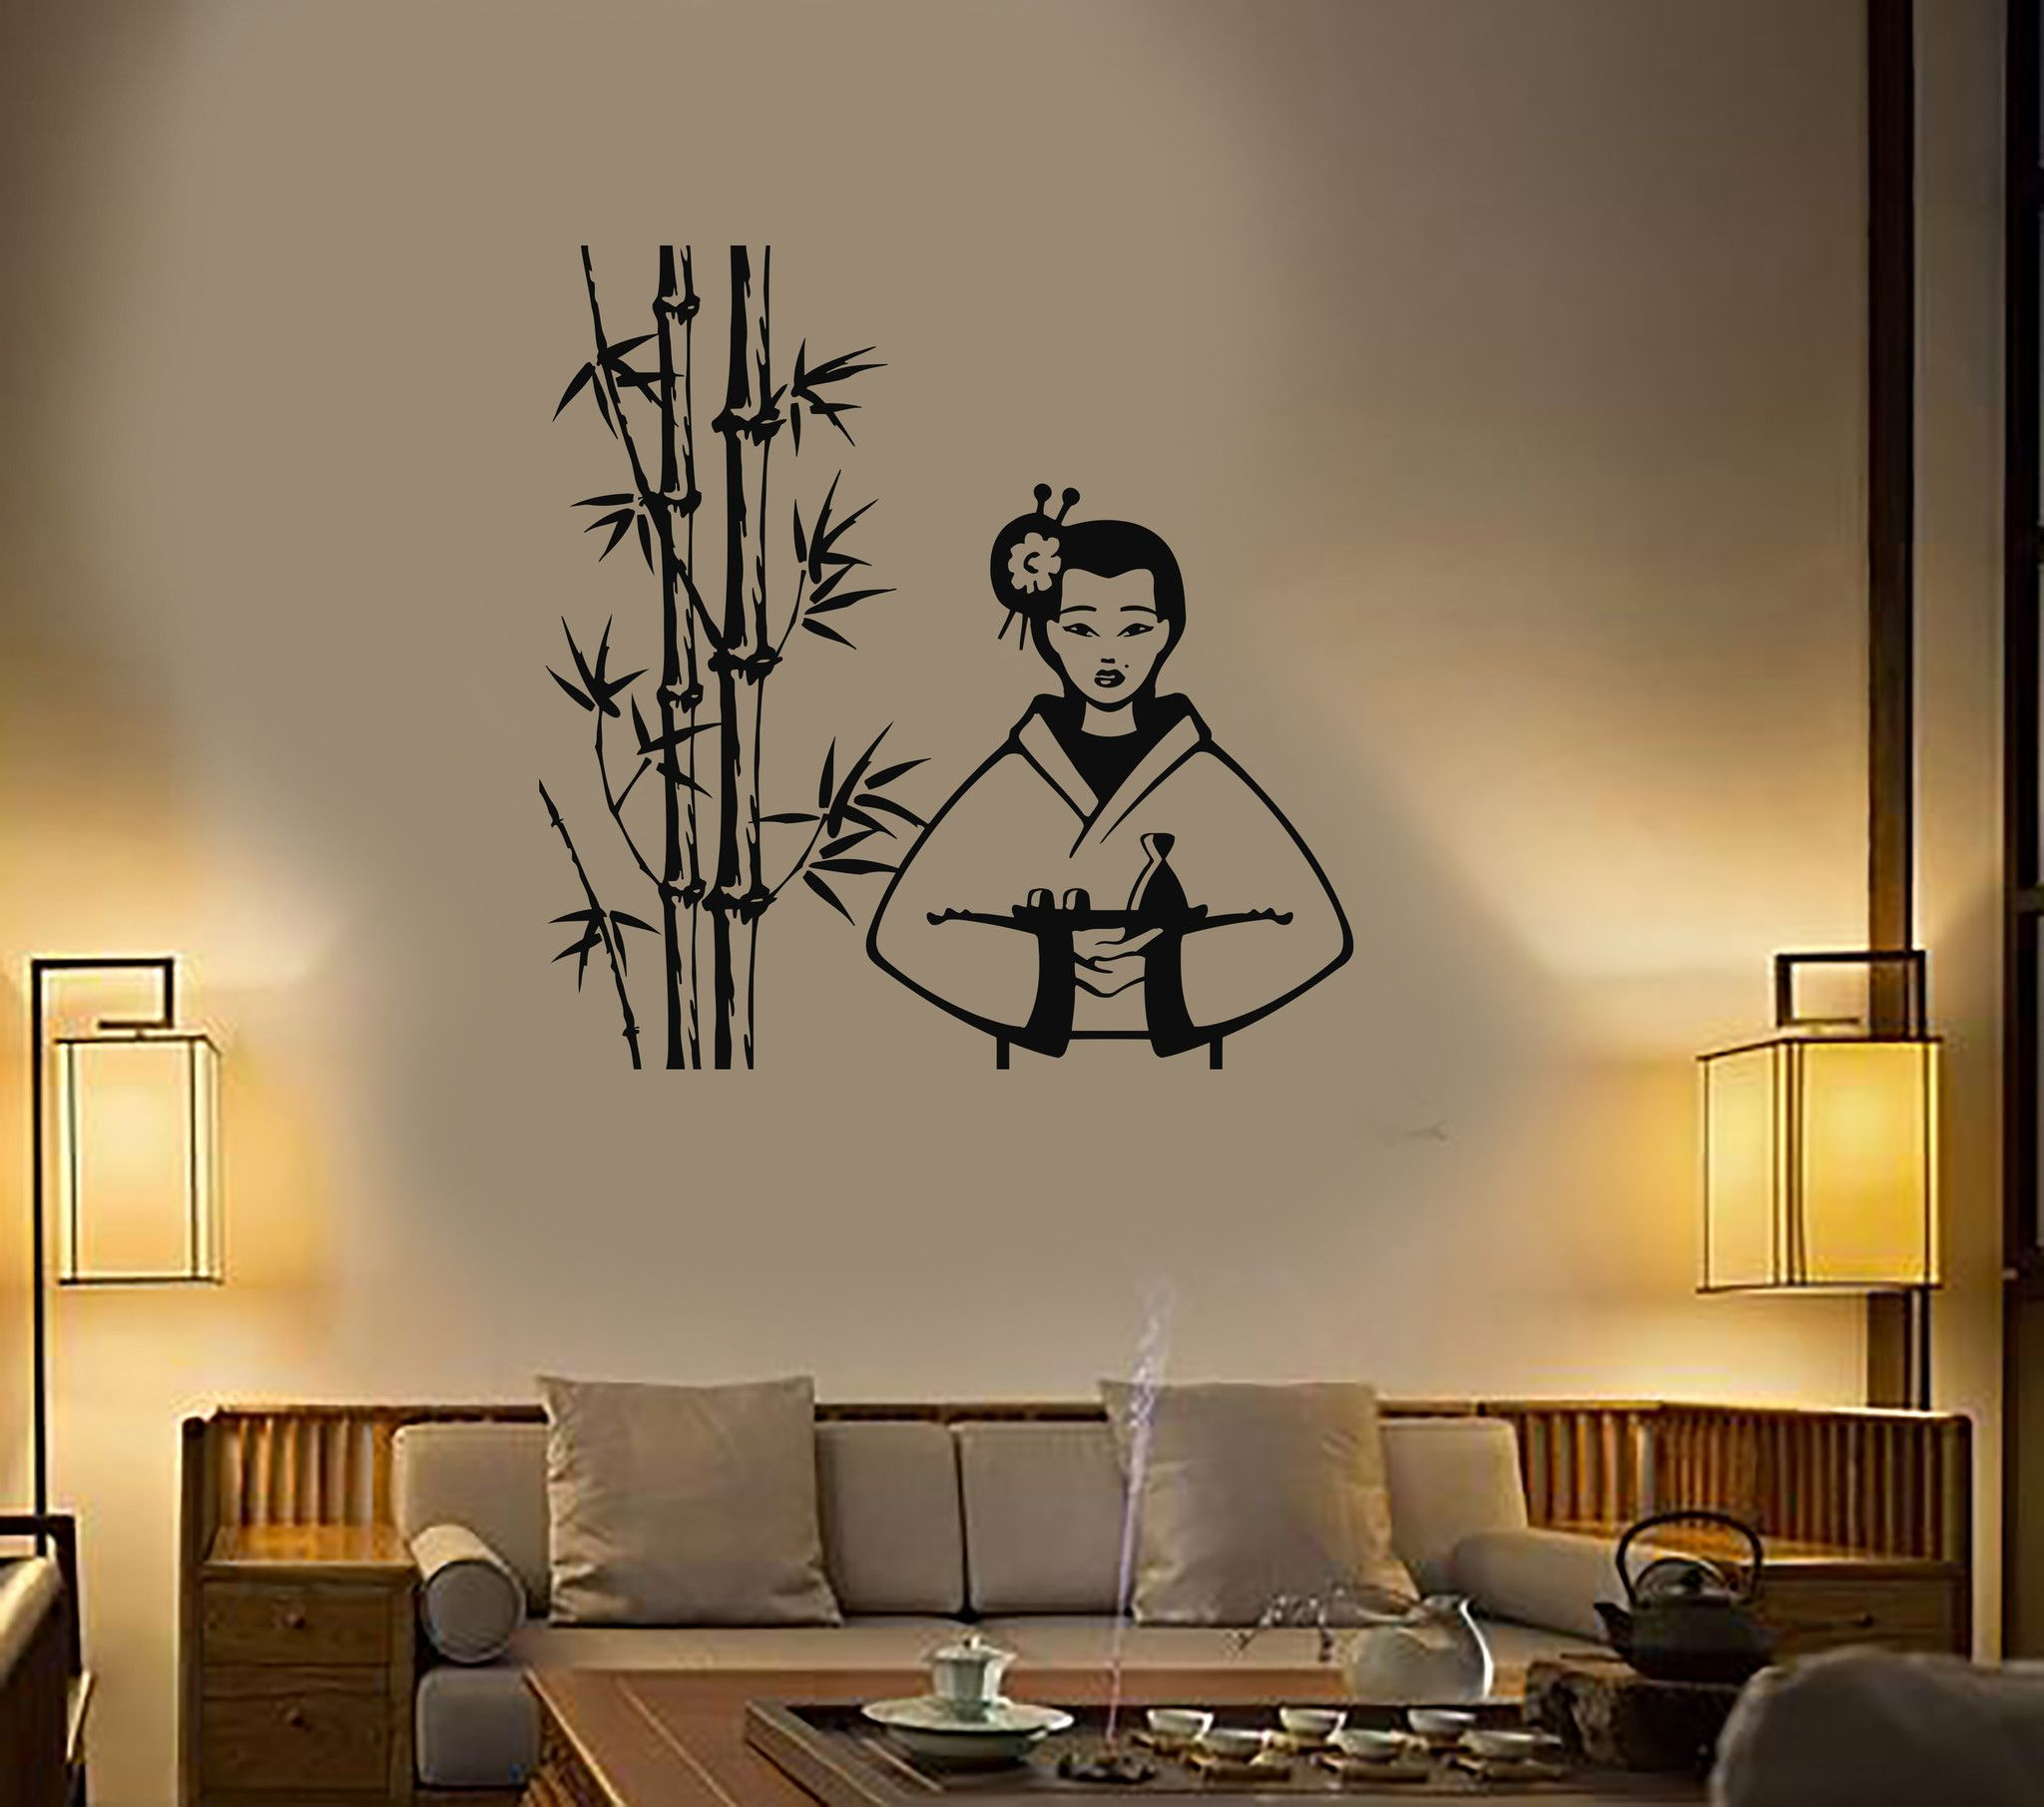 Vinyl Decal Geisha Sushi Oriental Decor Asian Restaurant Wall - Vinyl wall decals asian